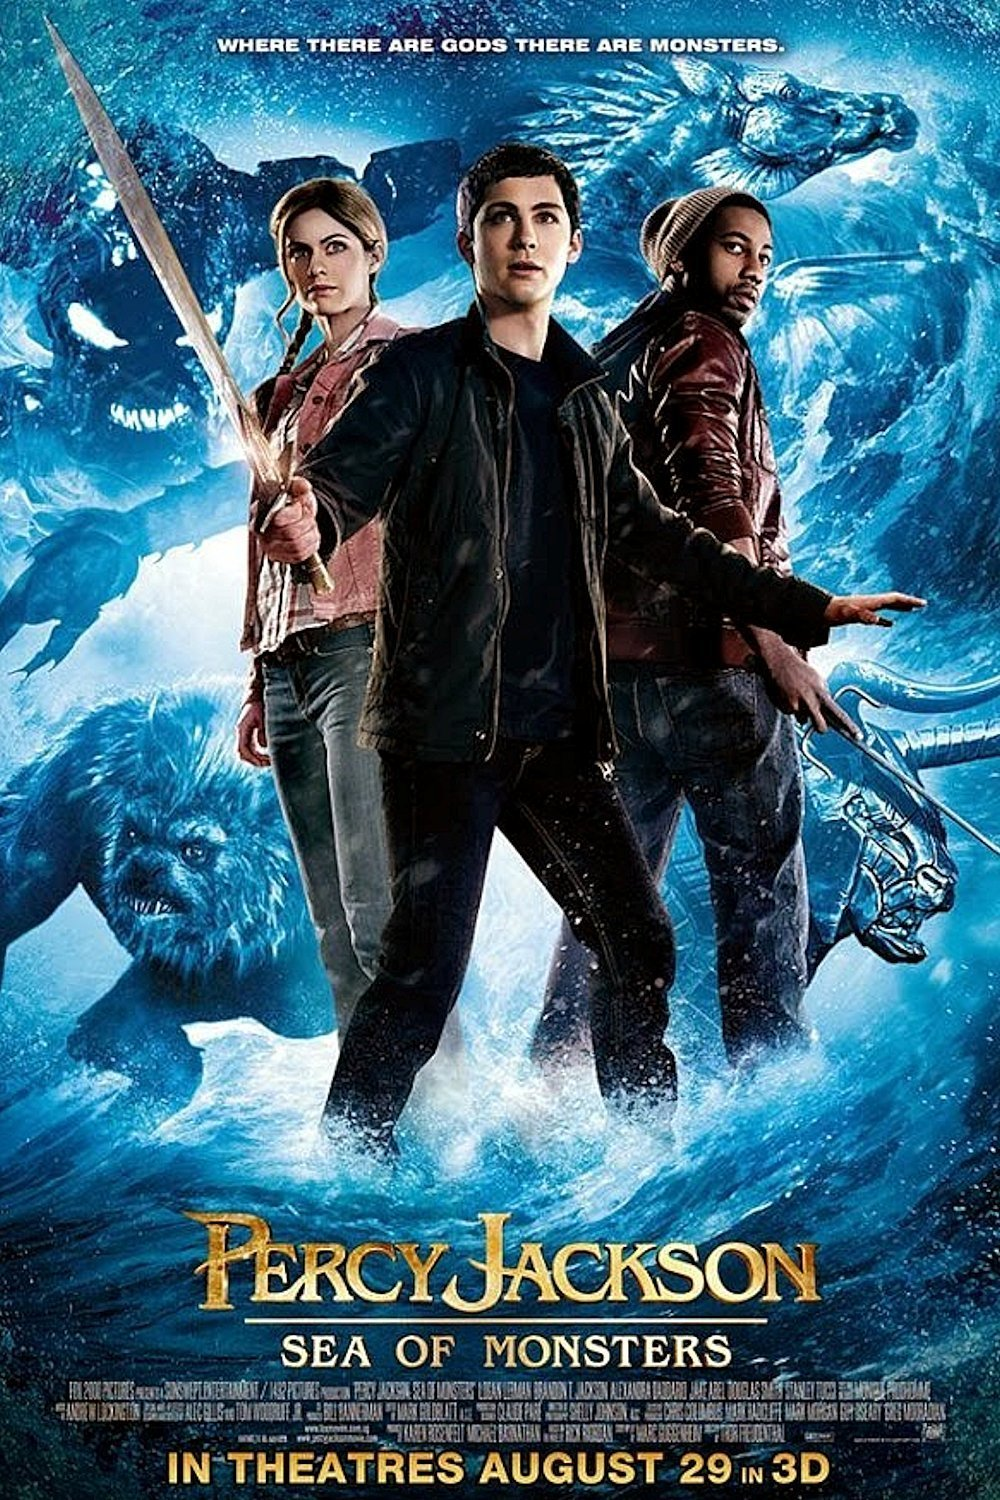 http://www.newdvdreleasedates.com/images/posters/large/percy-jackson-sea-of-monsters-2013-05.jpg